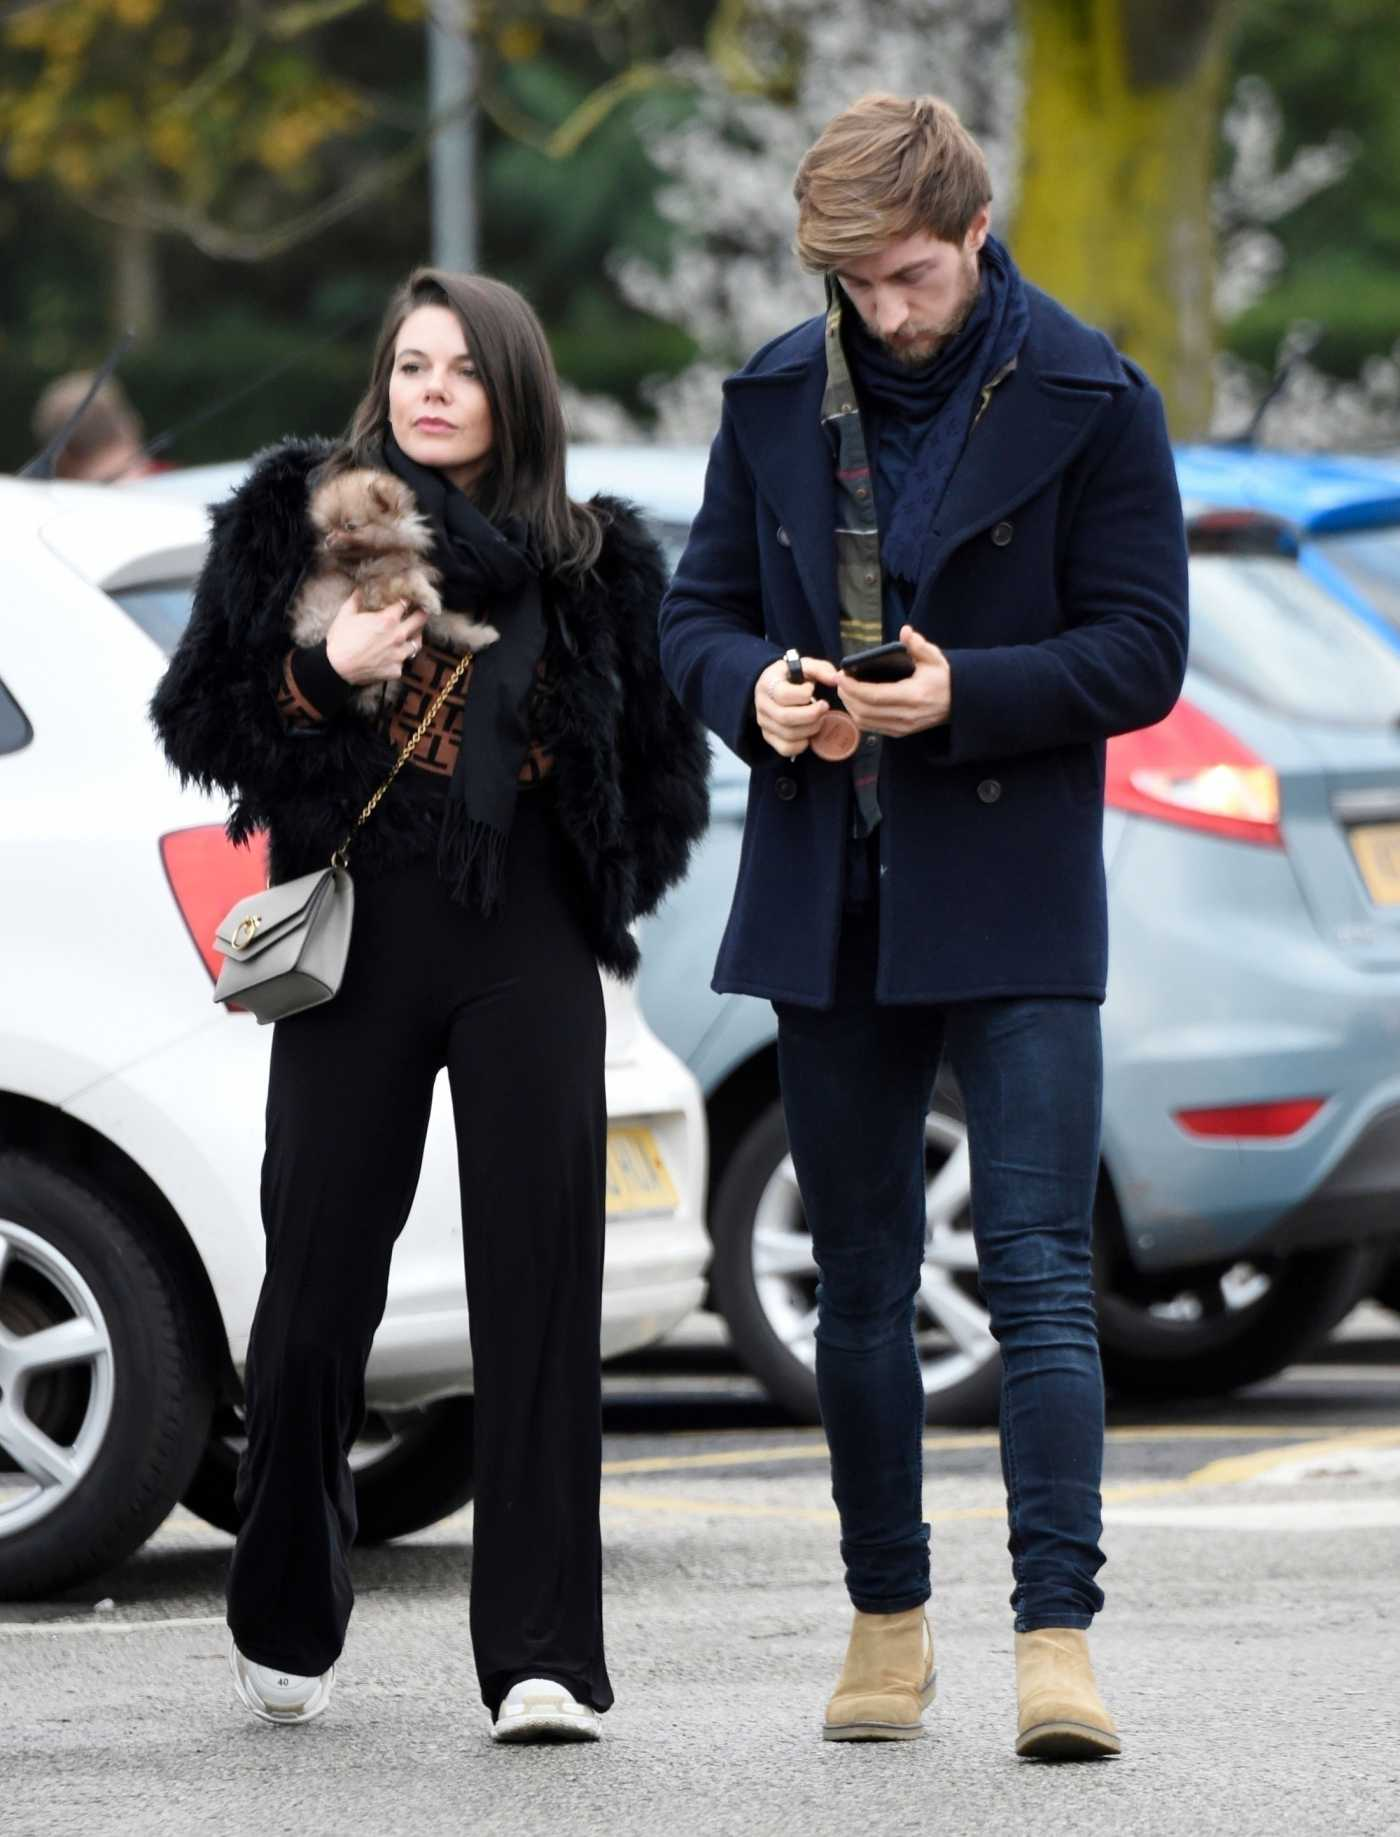 Faye Brookes in a Black Pants Was Seen with Her Puppy and Boyfriend while Out Christmas Shopping in Warrington 11/27/2020